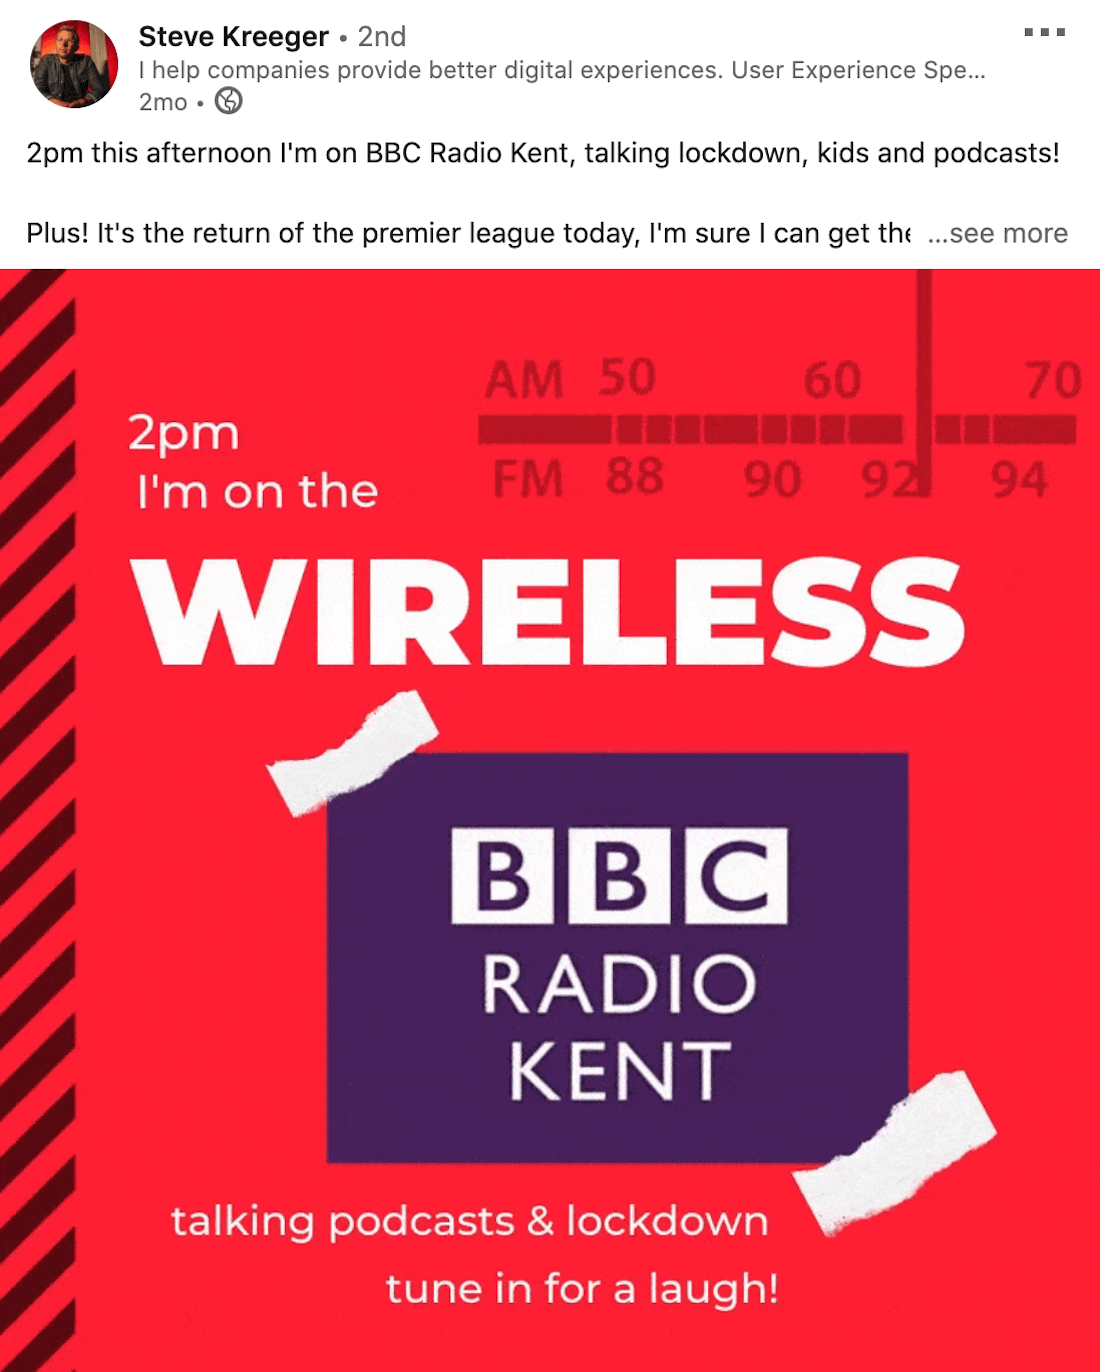 example of a linkedin video from steve kreeger announcing a podcast appearance on bbc radio kent